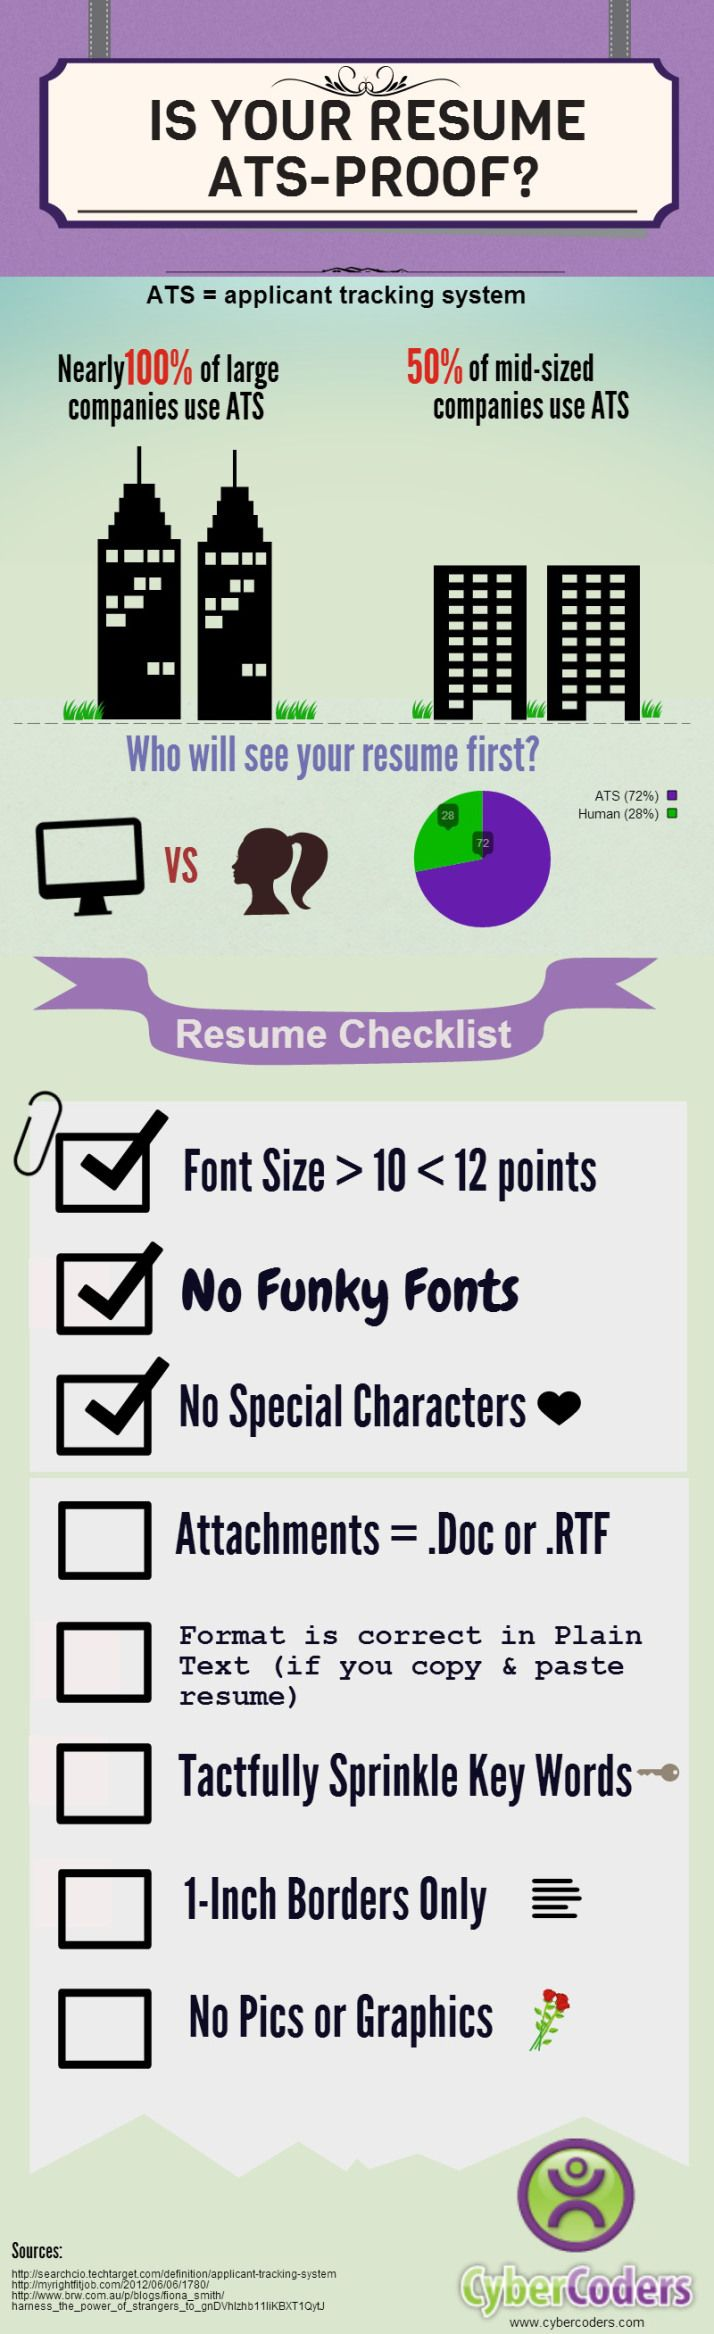 best images about resumes cover letters resume 17 best images about resumes cover letters resume tips cover letter sample and cover letters